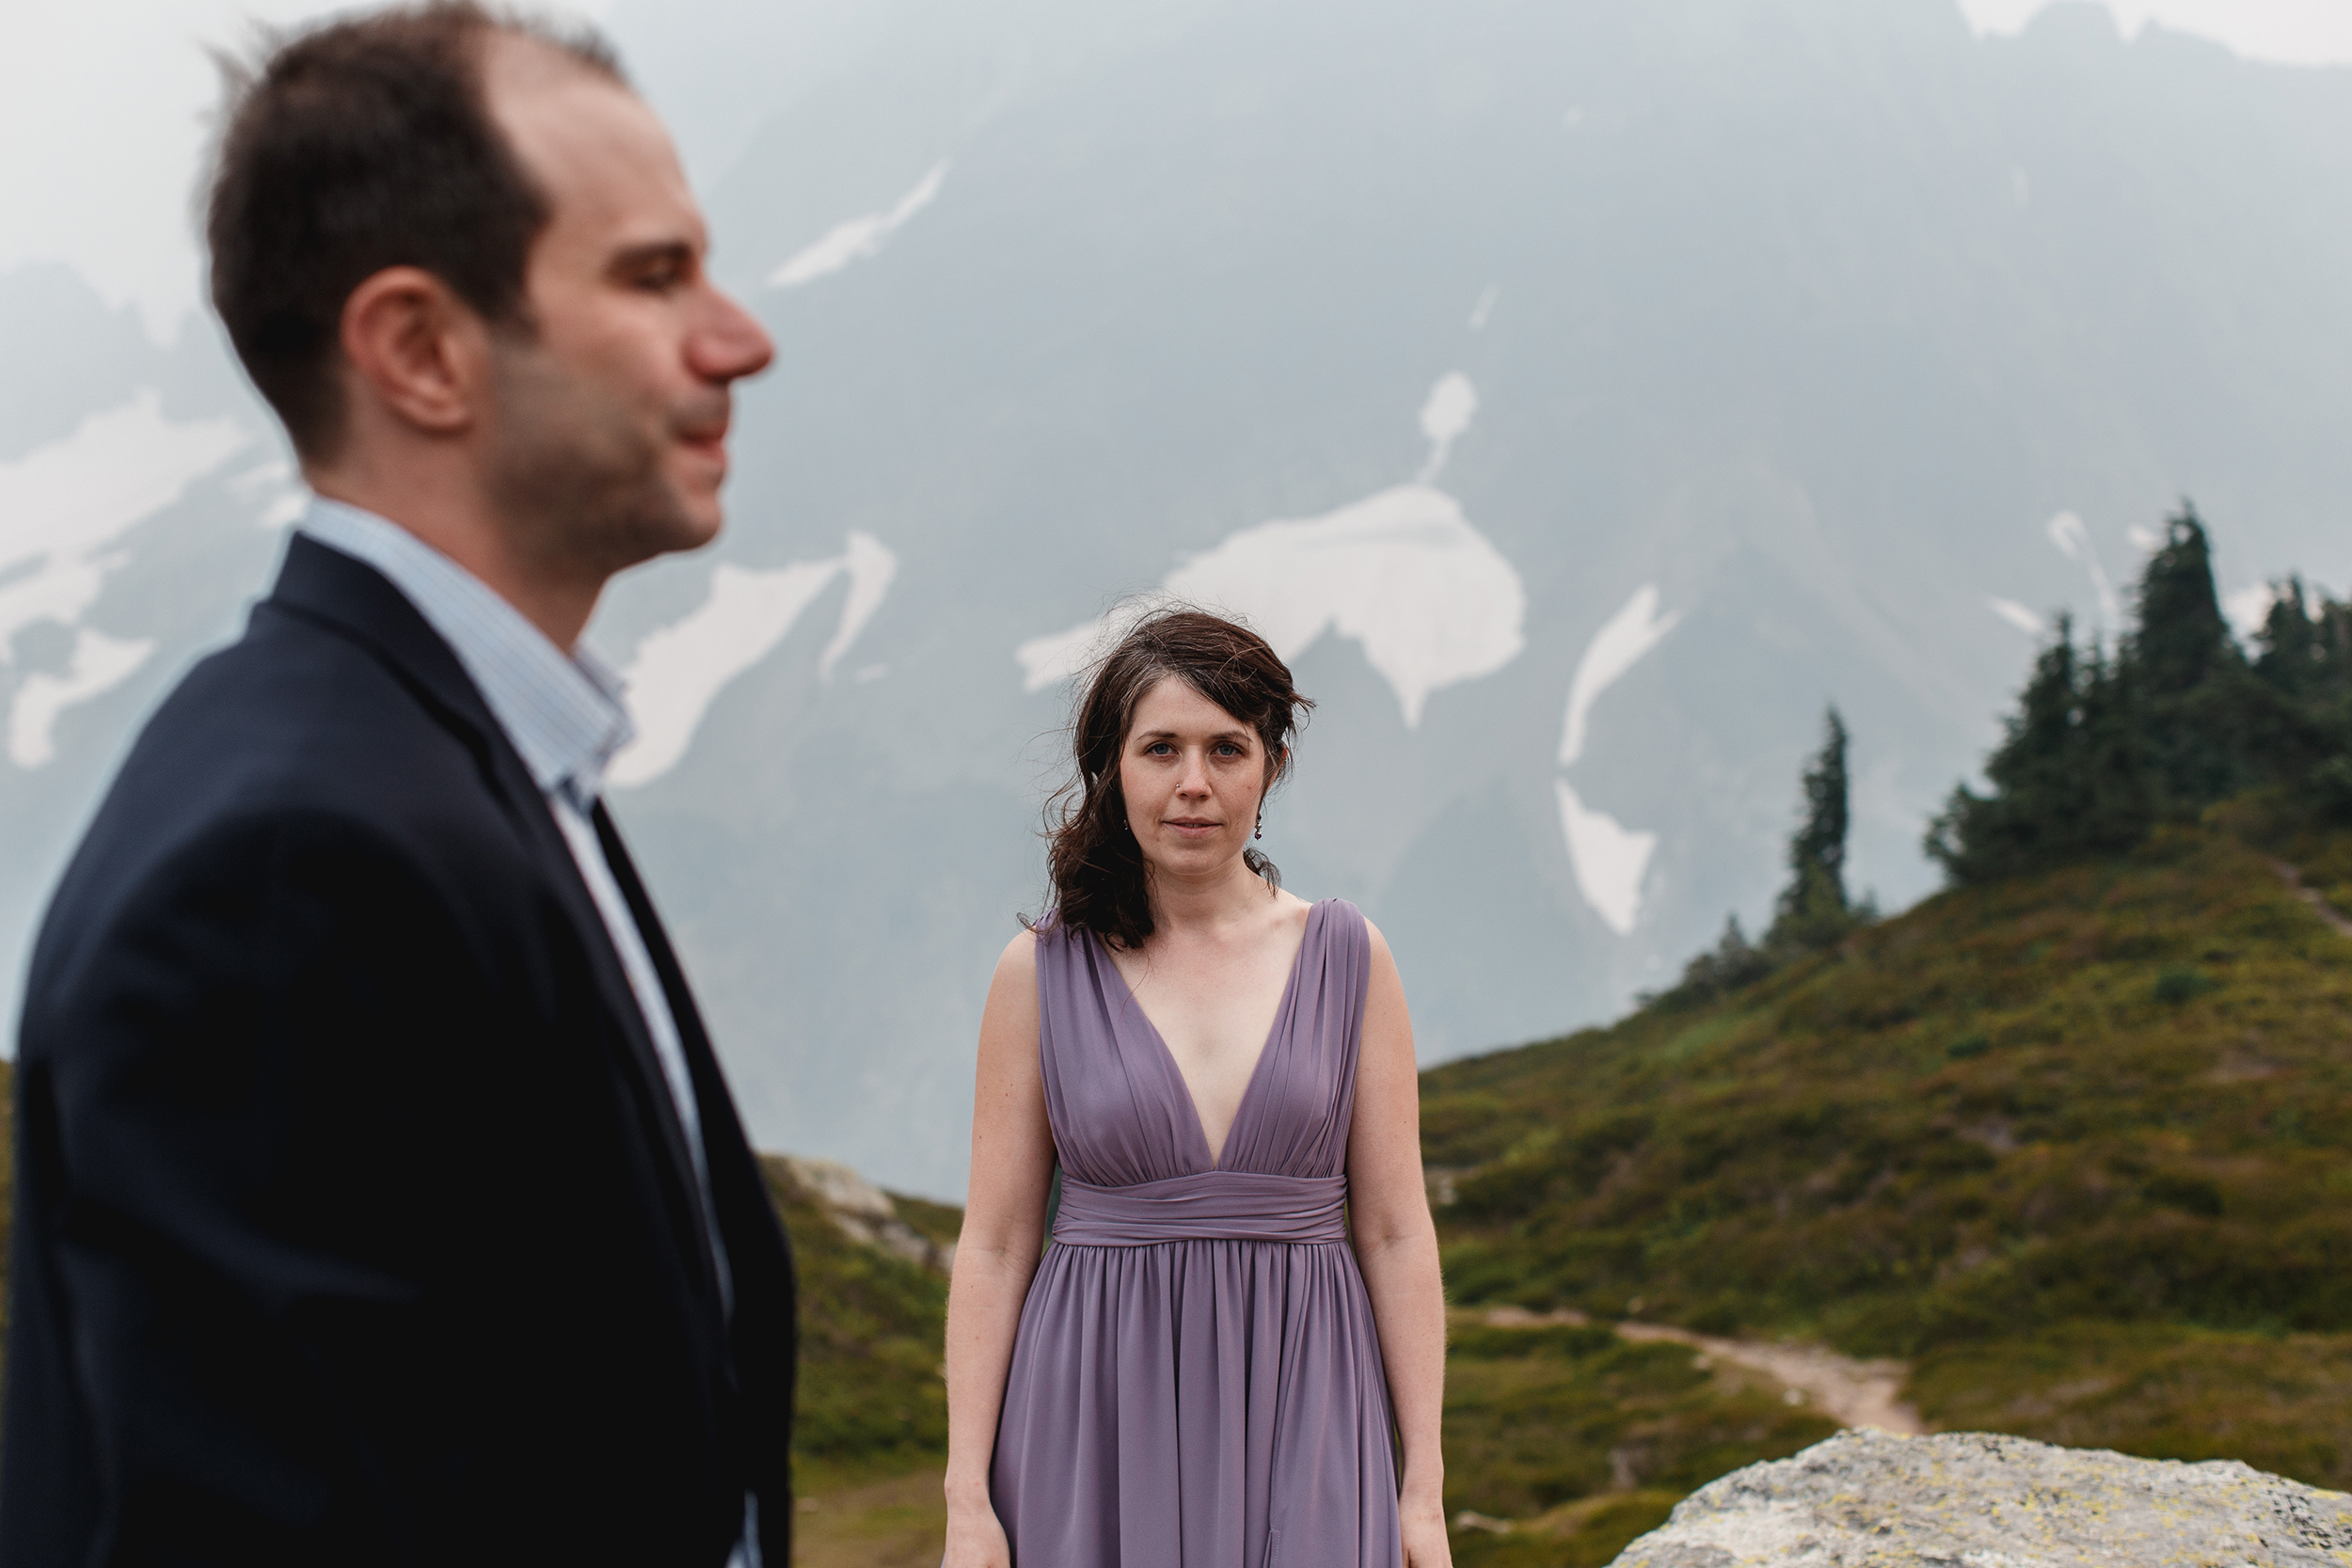 north cascades national park hiking engagement photo session